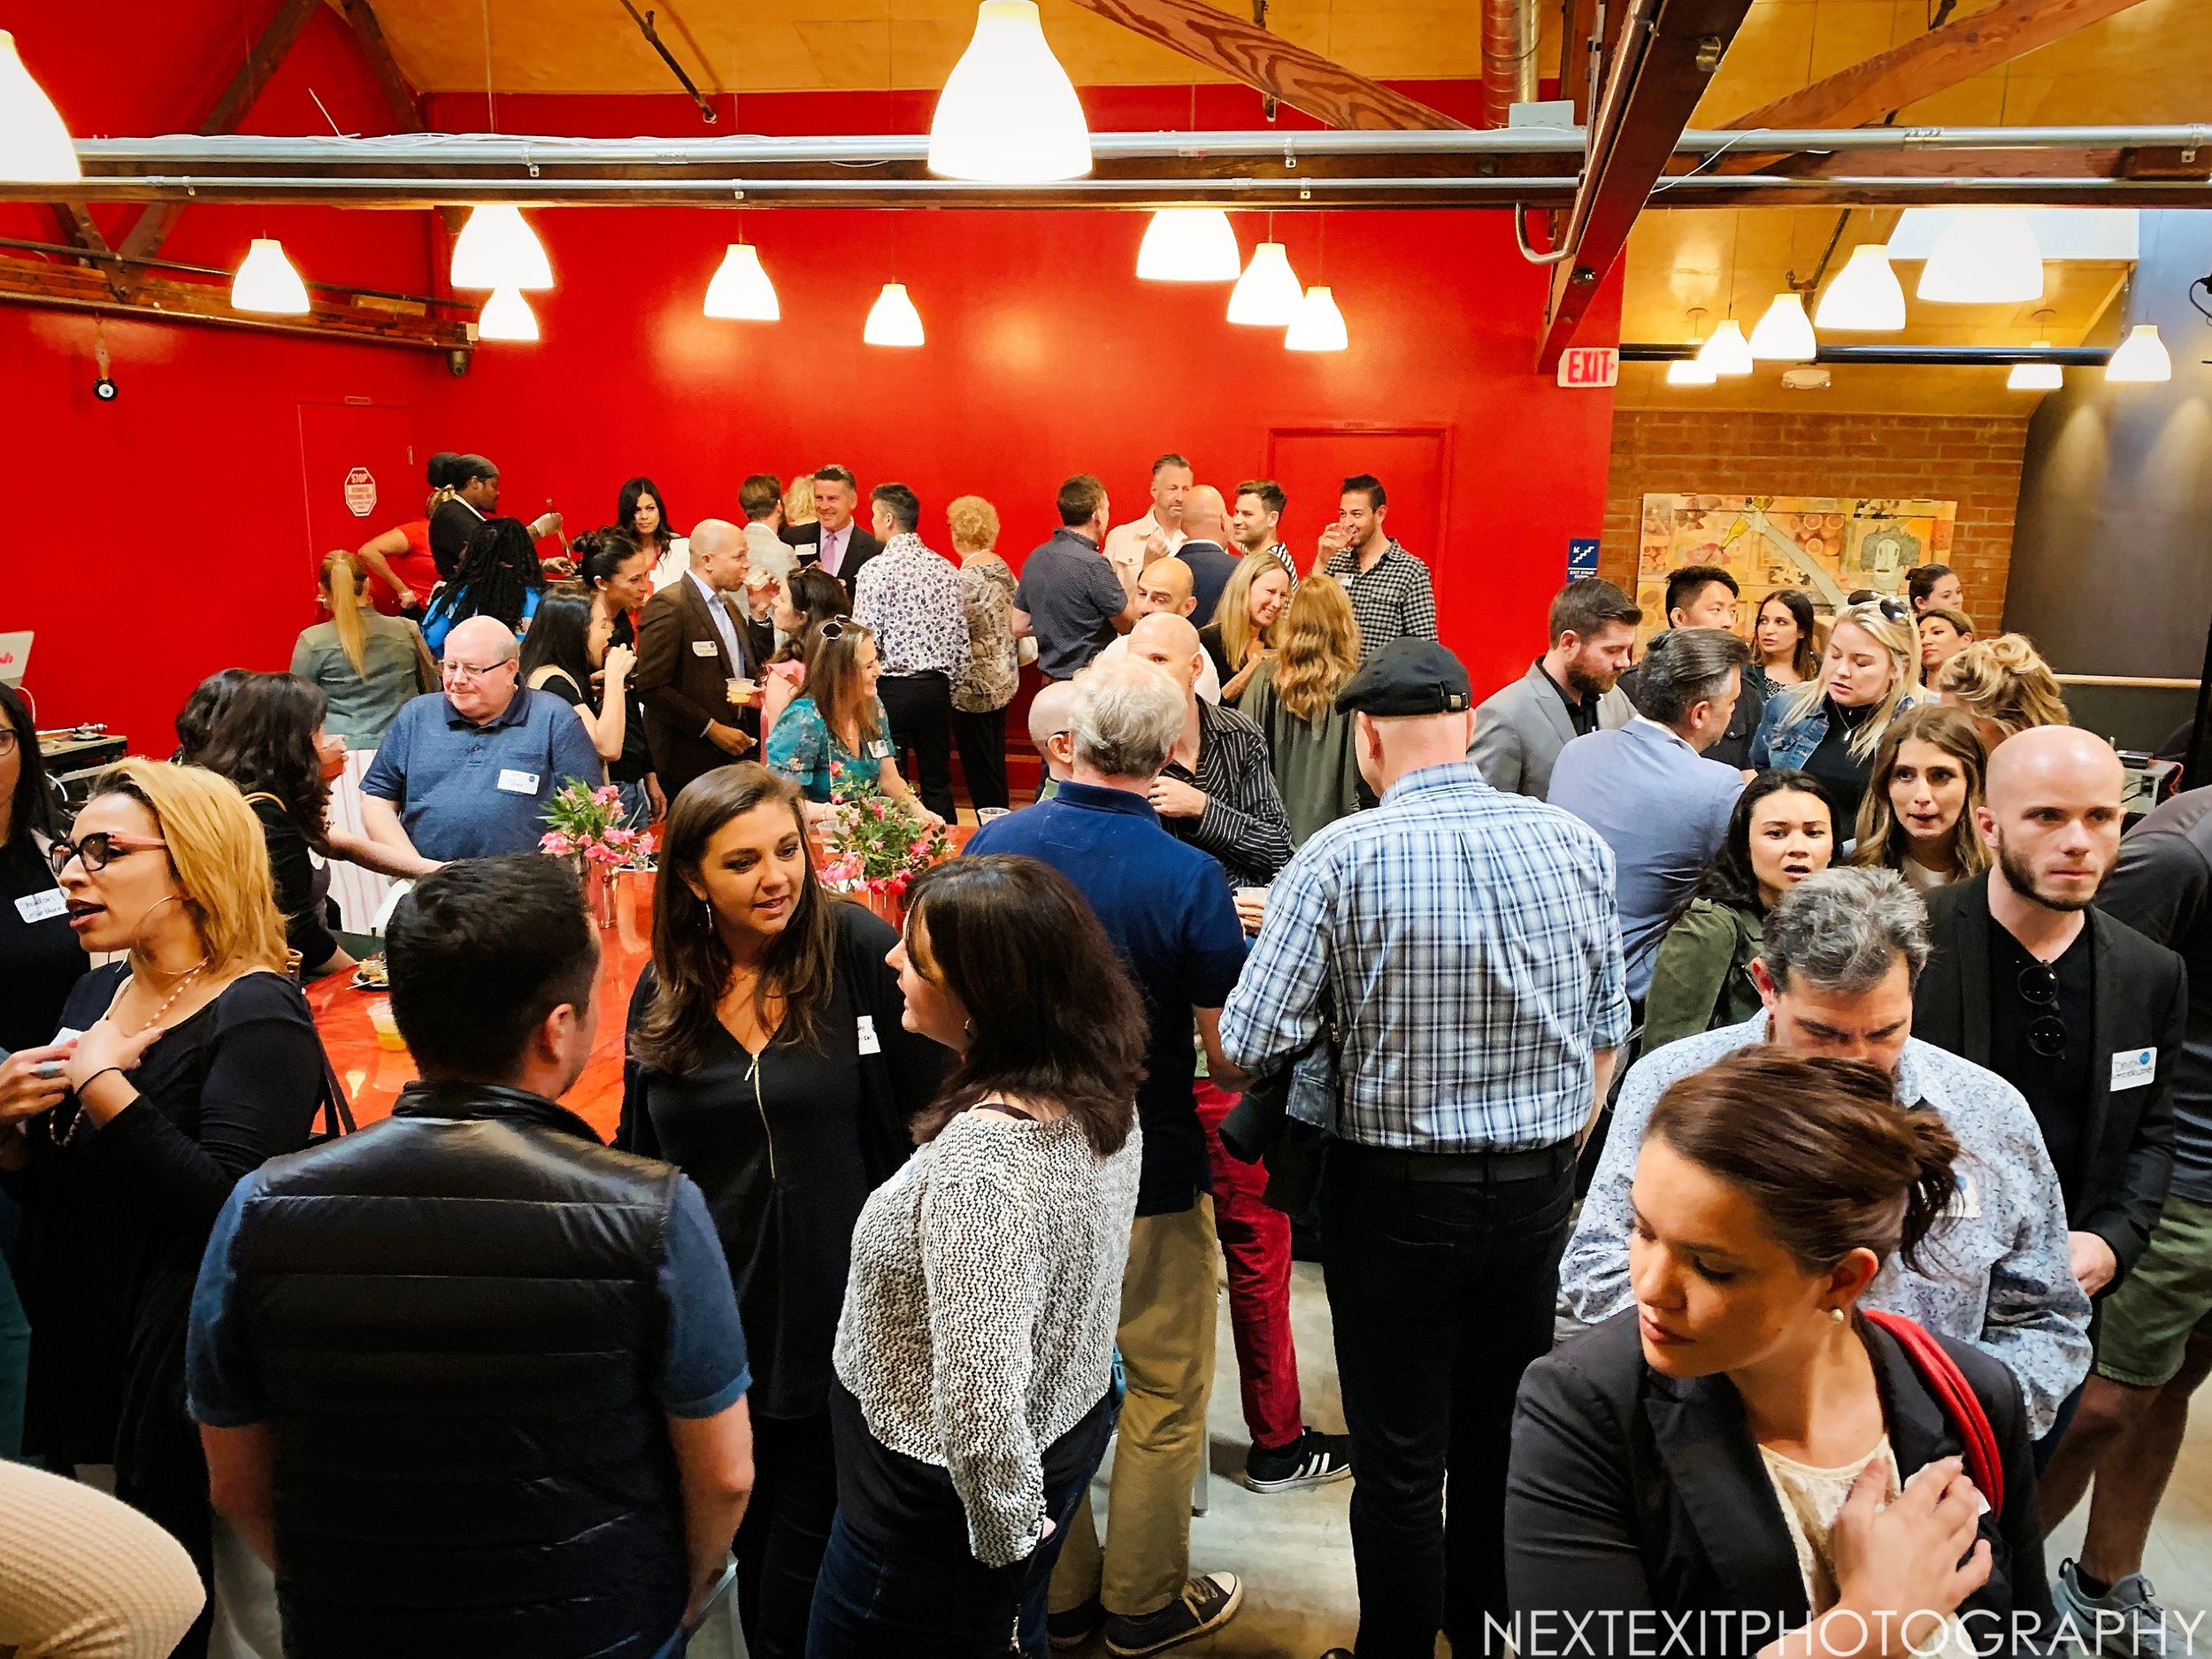 May 29, 2019 - Host: Greenbar Distillery, DTLAPhoto Booth by BRIAN KRAMER PHOTOGRAPHYEvent Photography by NEXT EXIT PHOTOGRAPHYClick Here